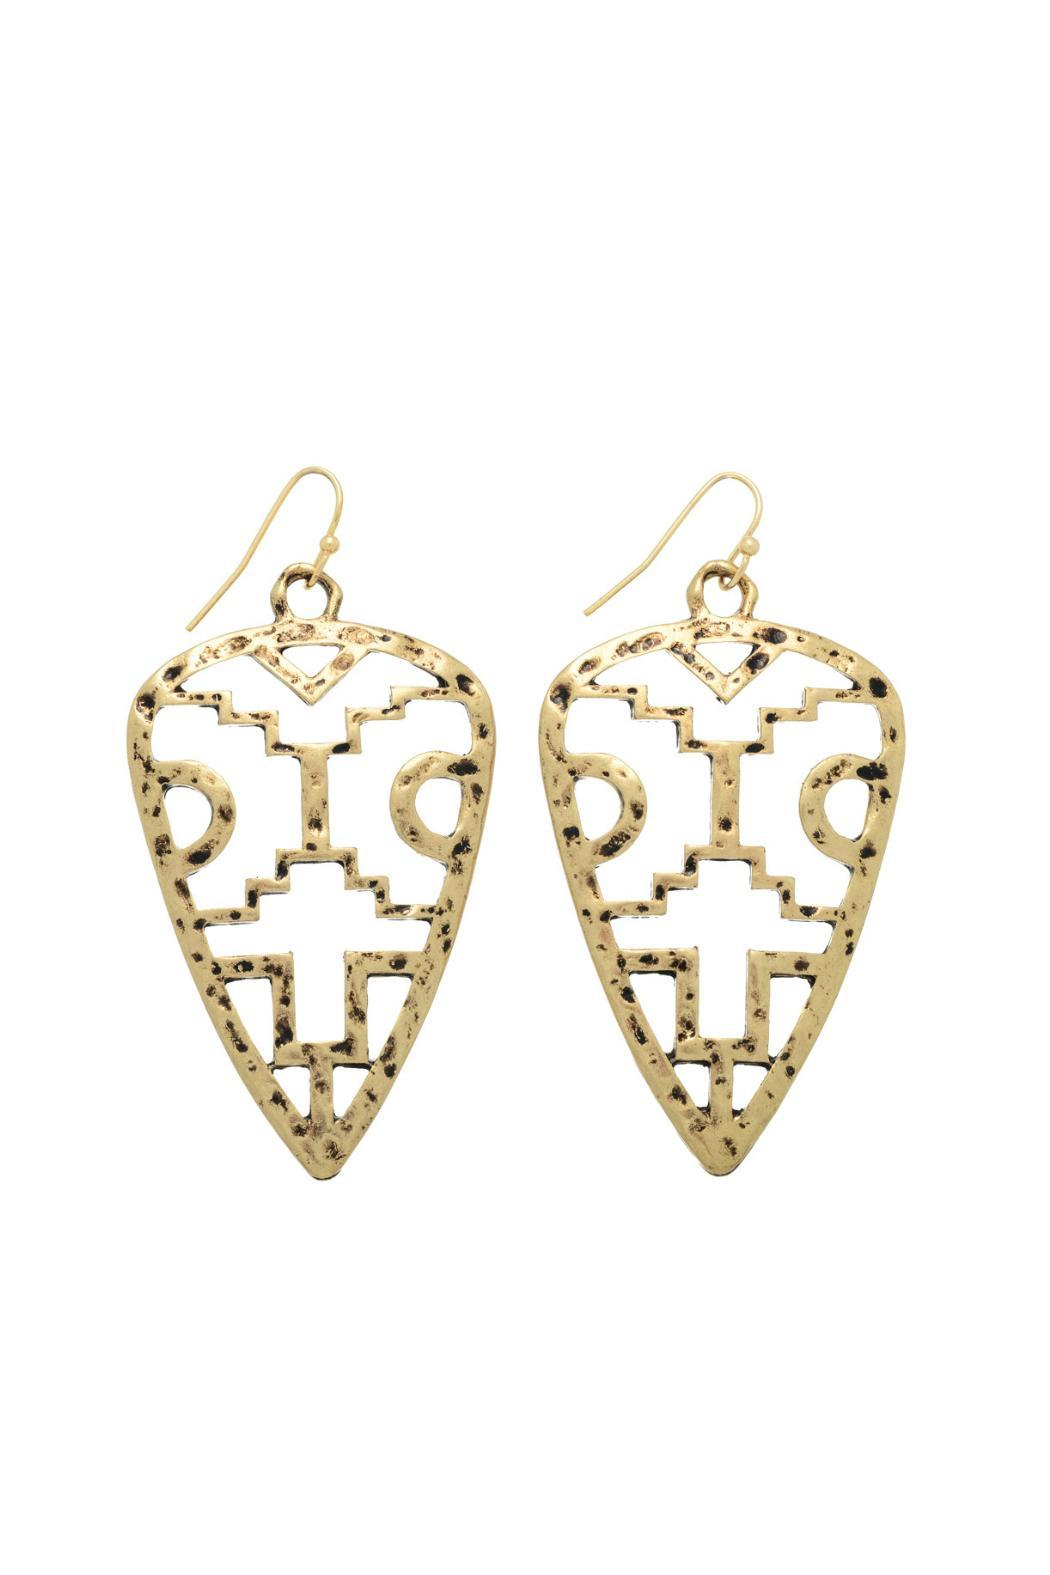 Mimi's Gift Gallery Gold Tribal Earrings - Main Image